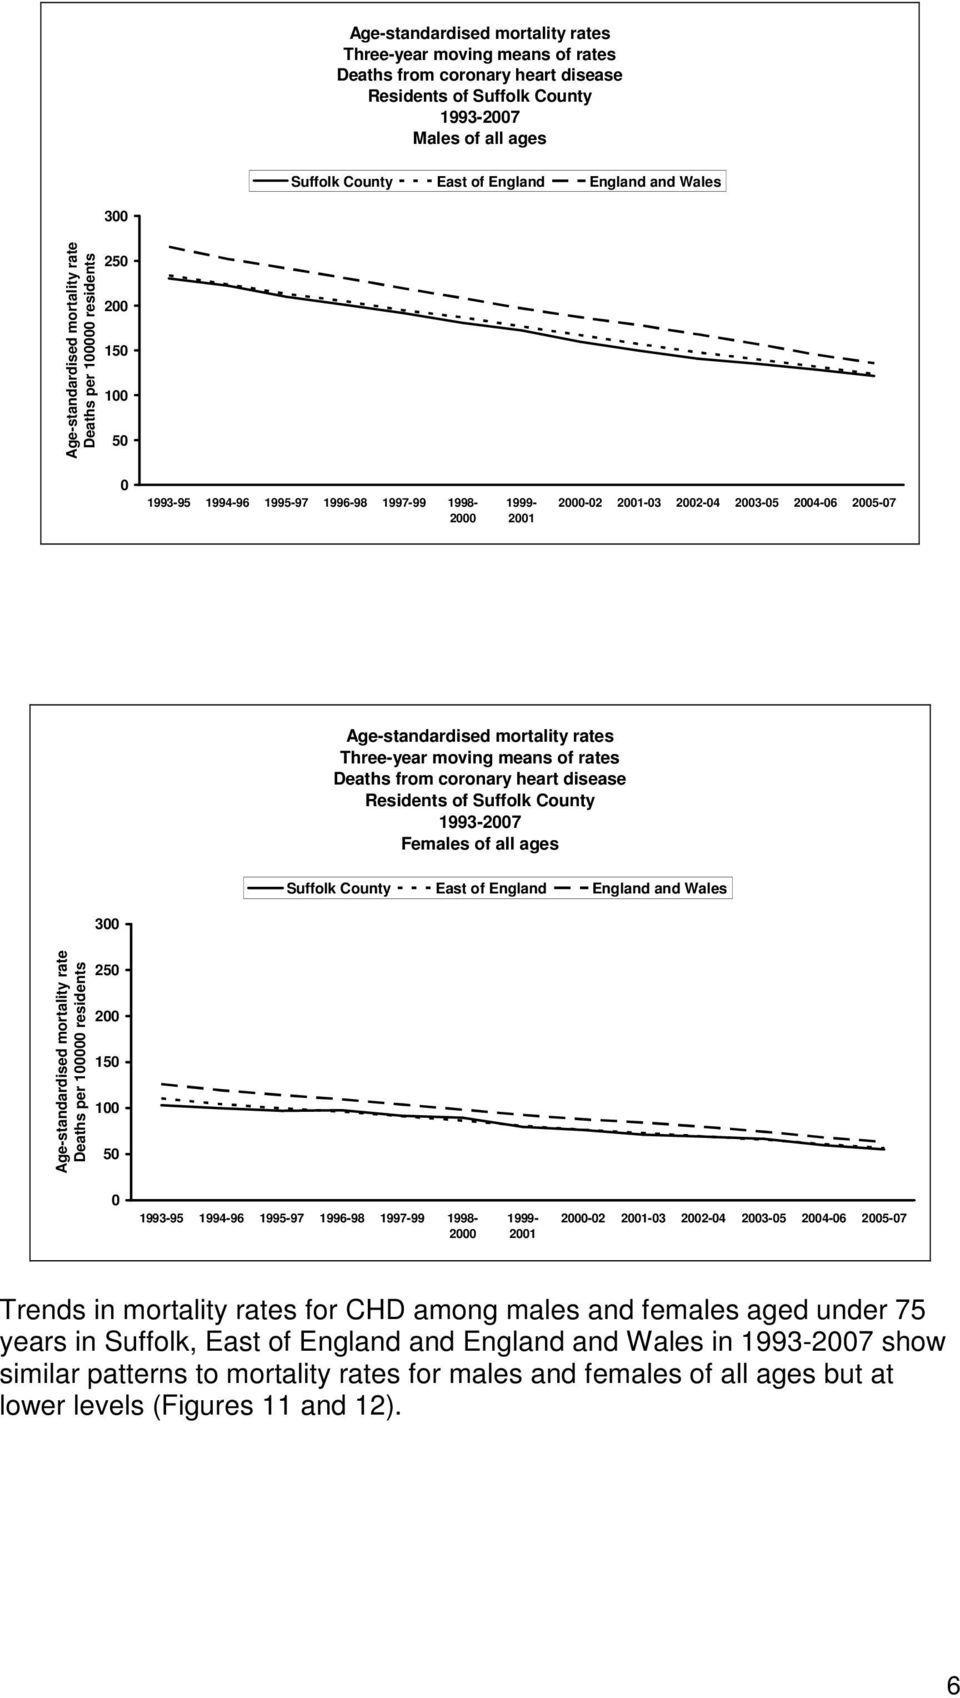 Age-standardised mortality rates Three-year moving means of rates Deaths from coronary heart disease Residents of Suffolk County 1993-2007 Females of all ages Suffolk County East of England England